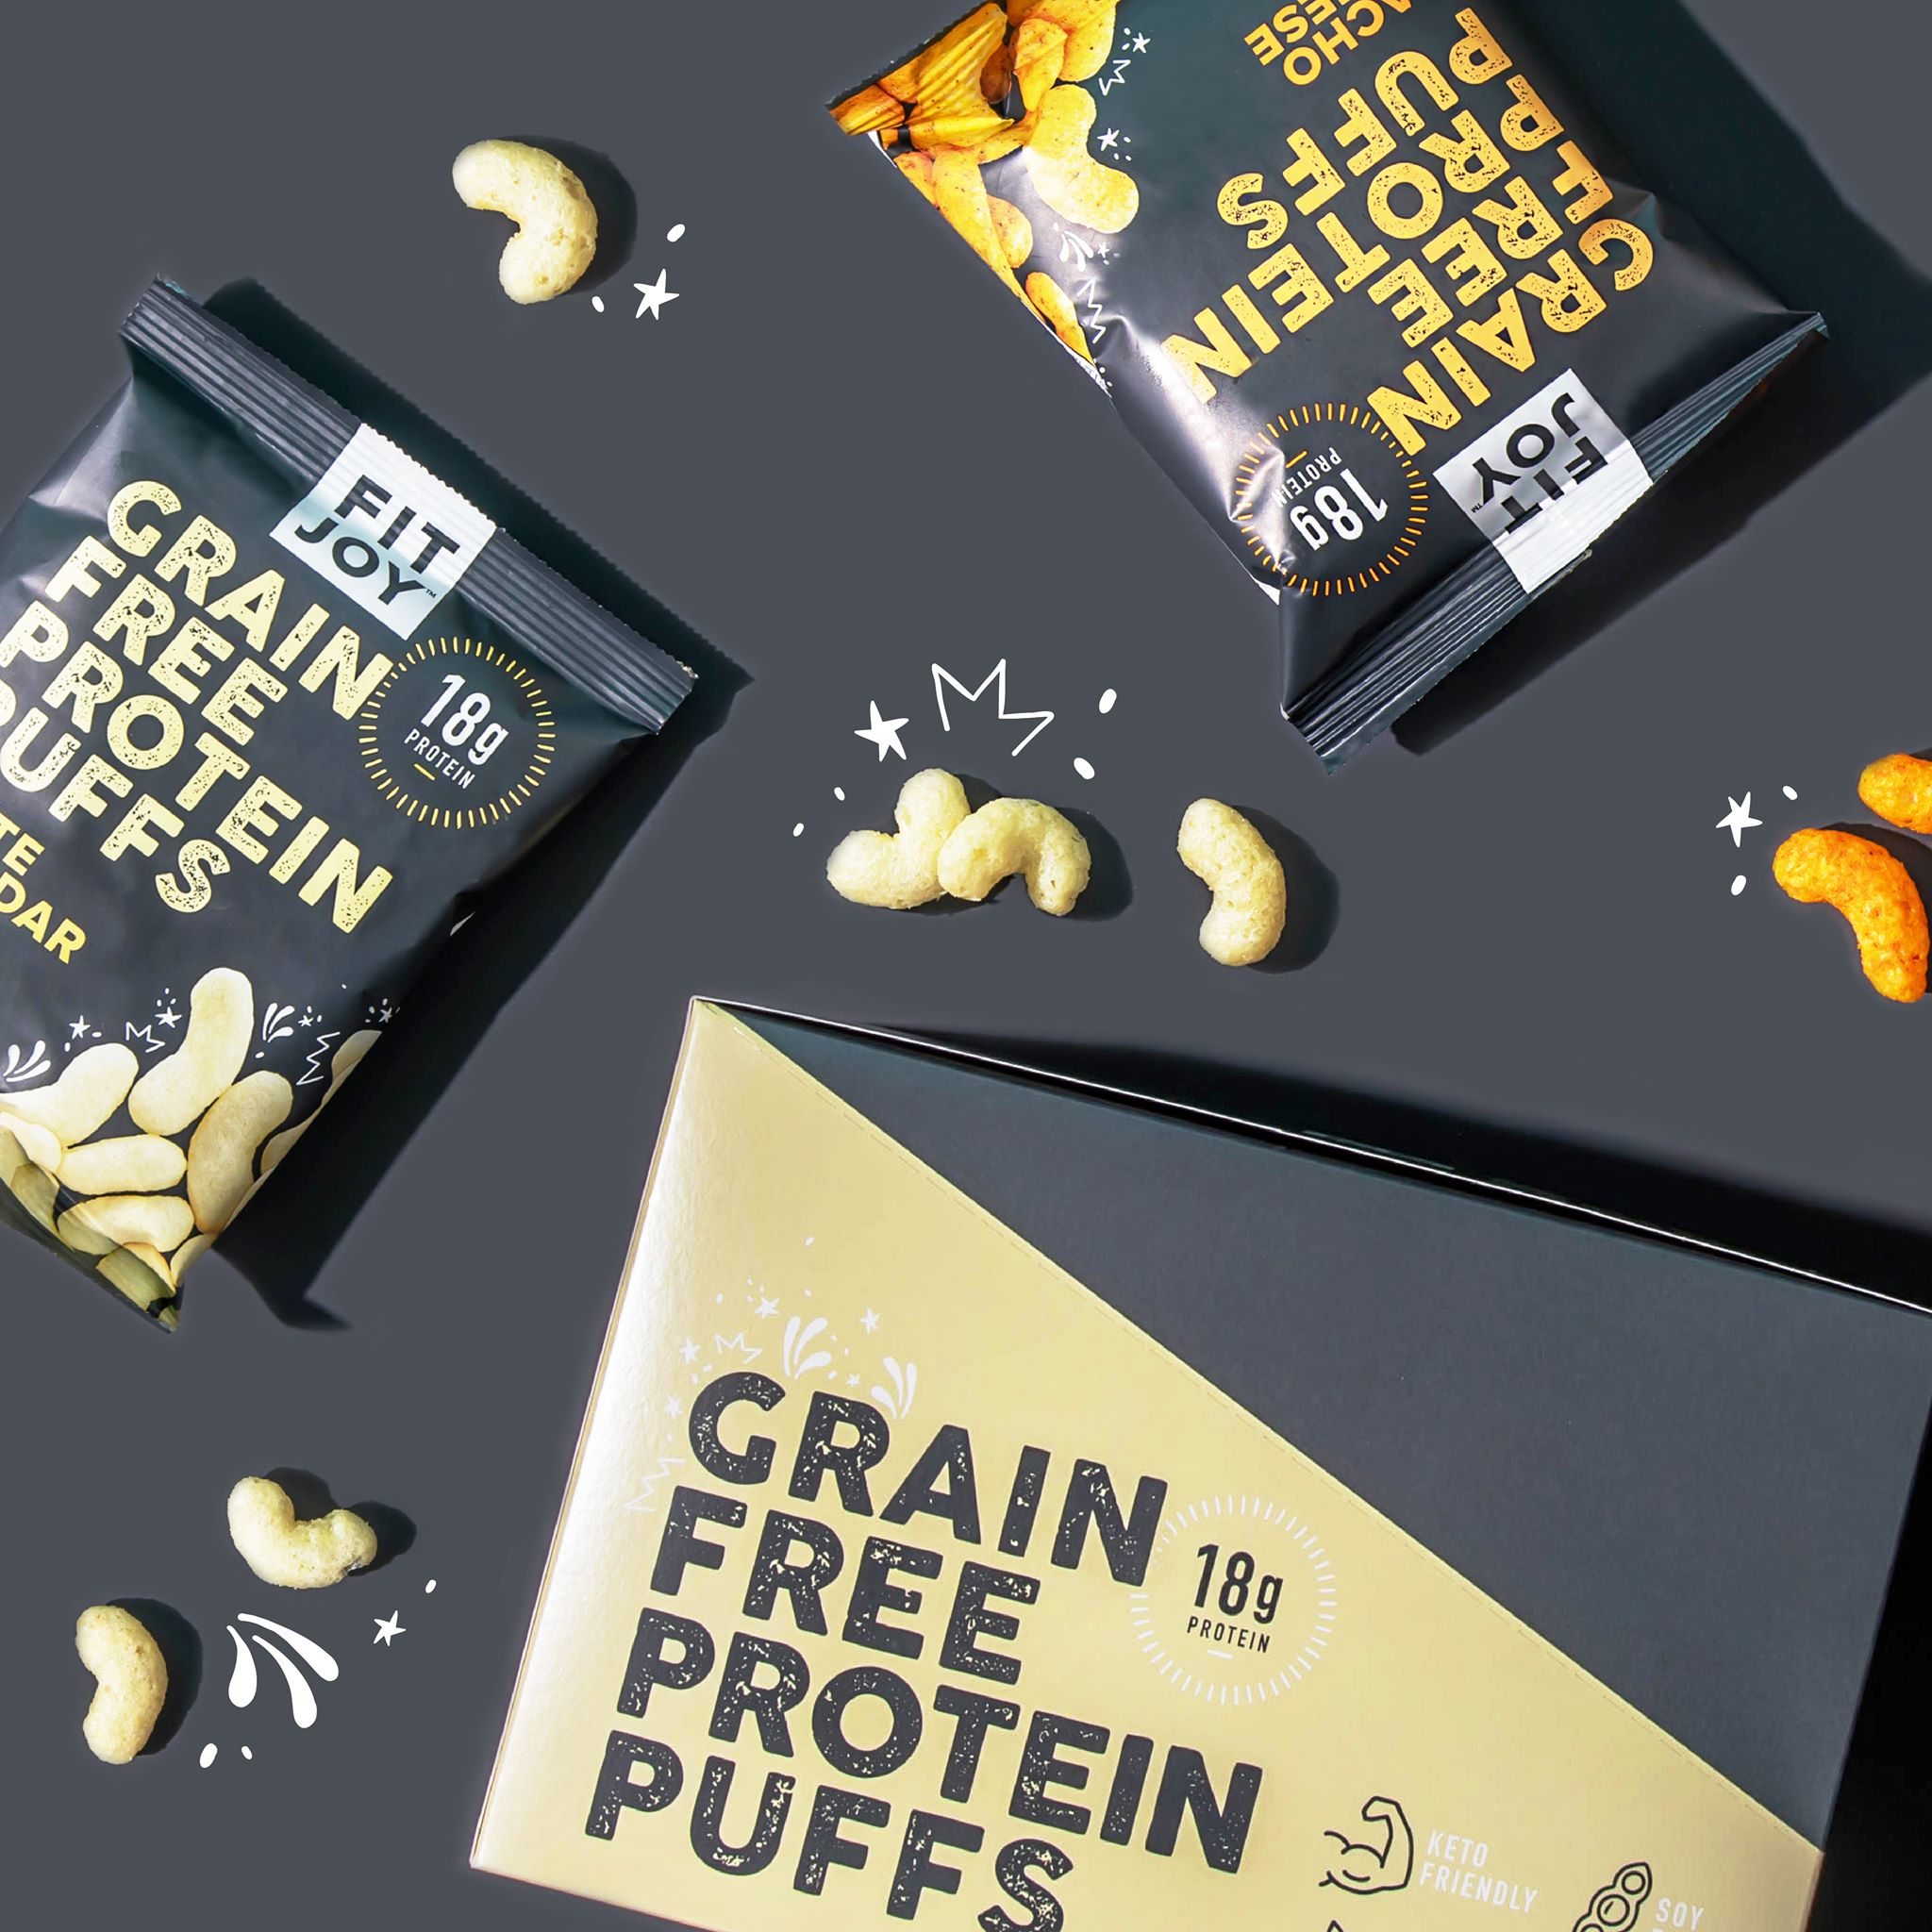 FitJoy Releases High Protein, Low Carb Snack Puffs